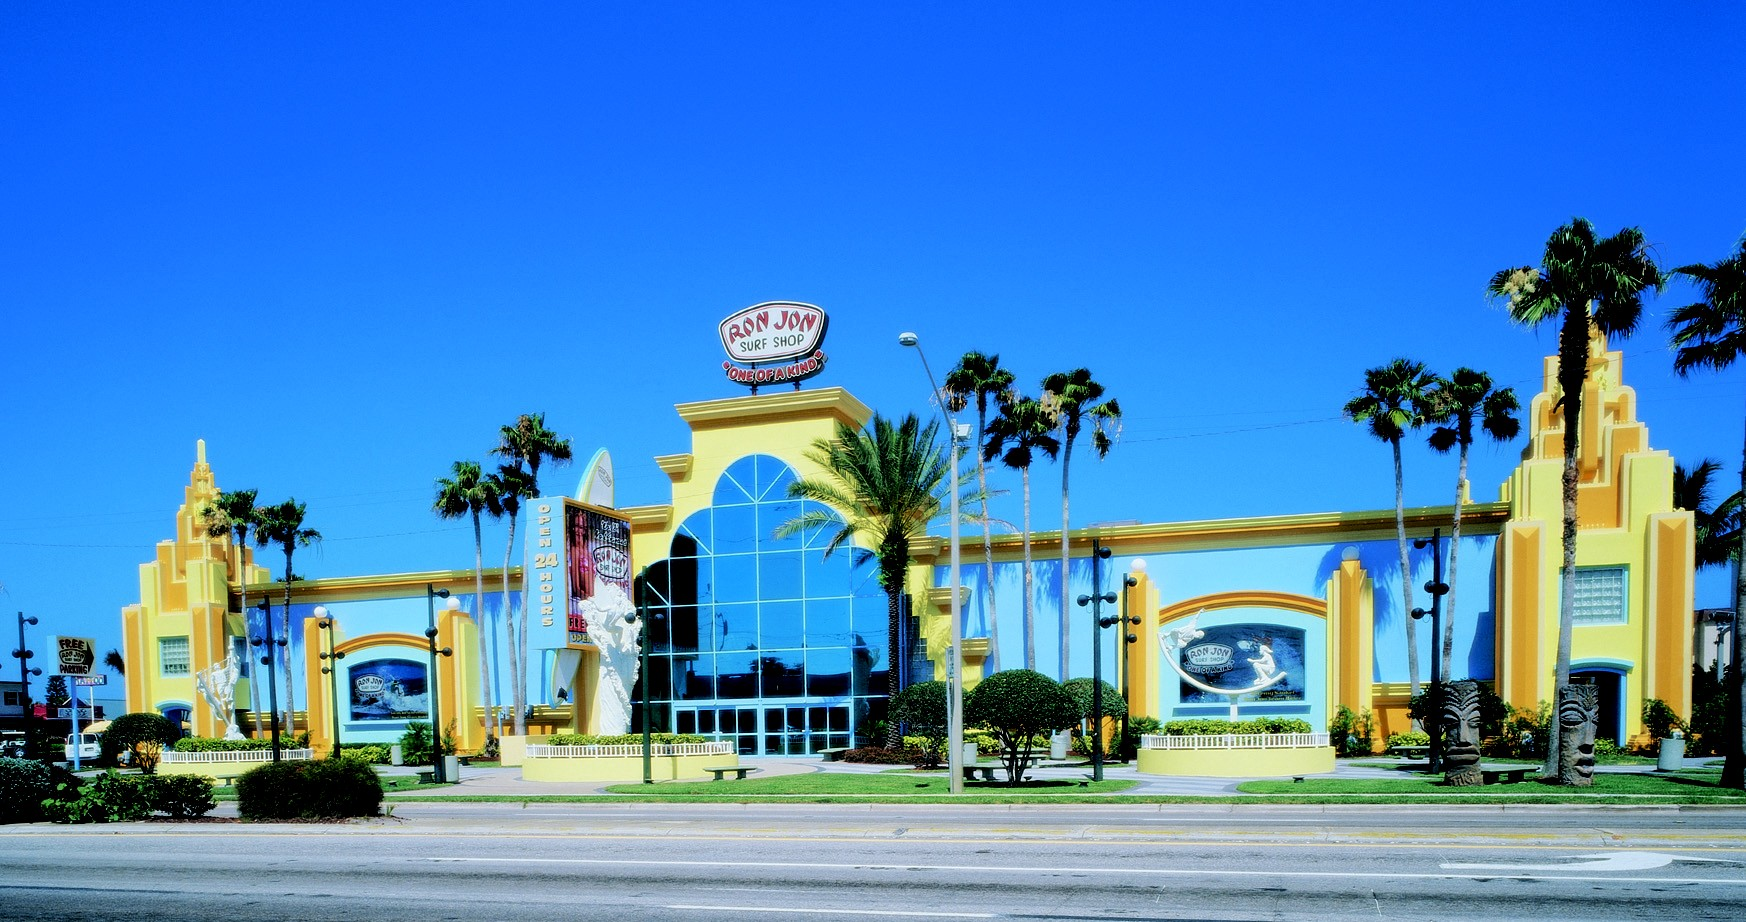 Ron jon coupon cocoa beach